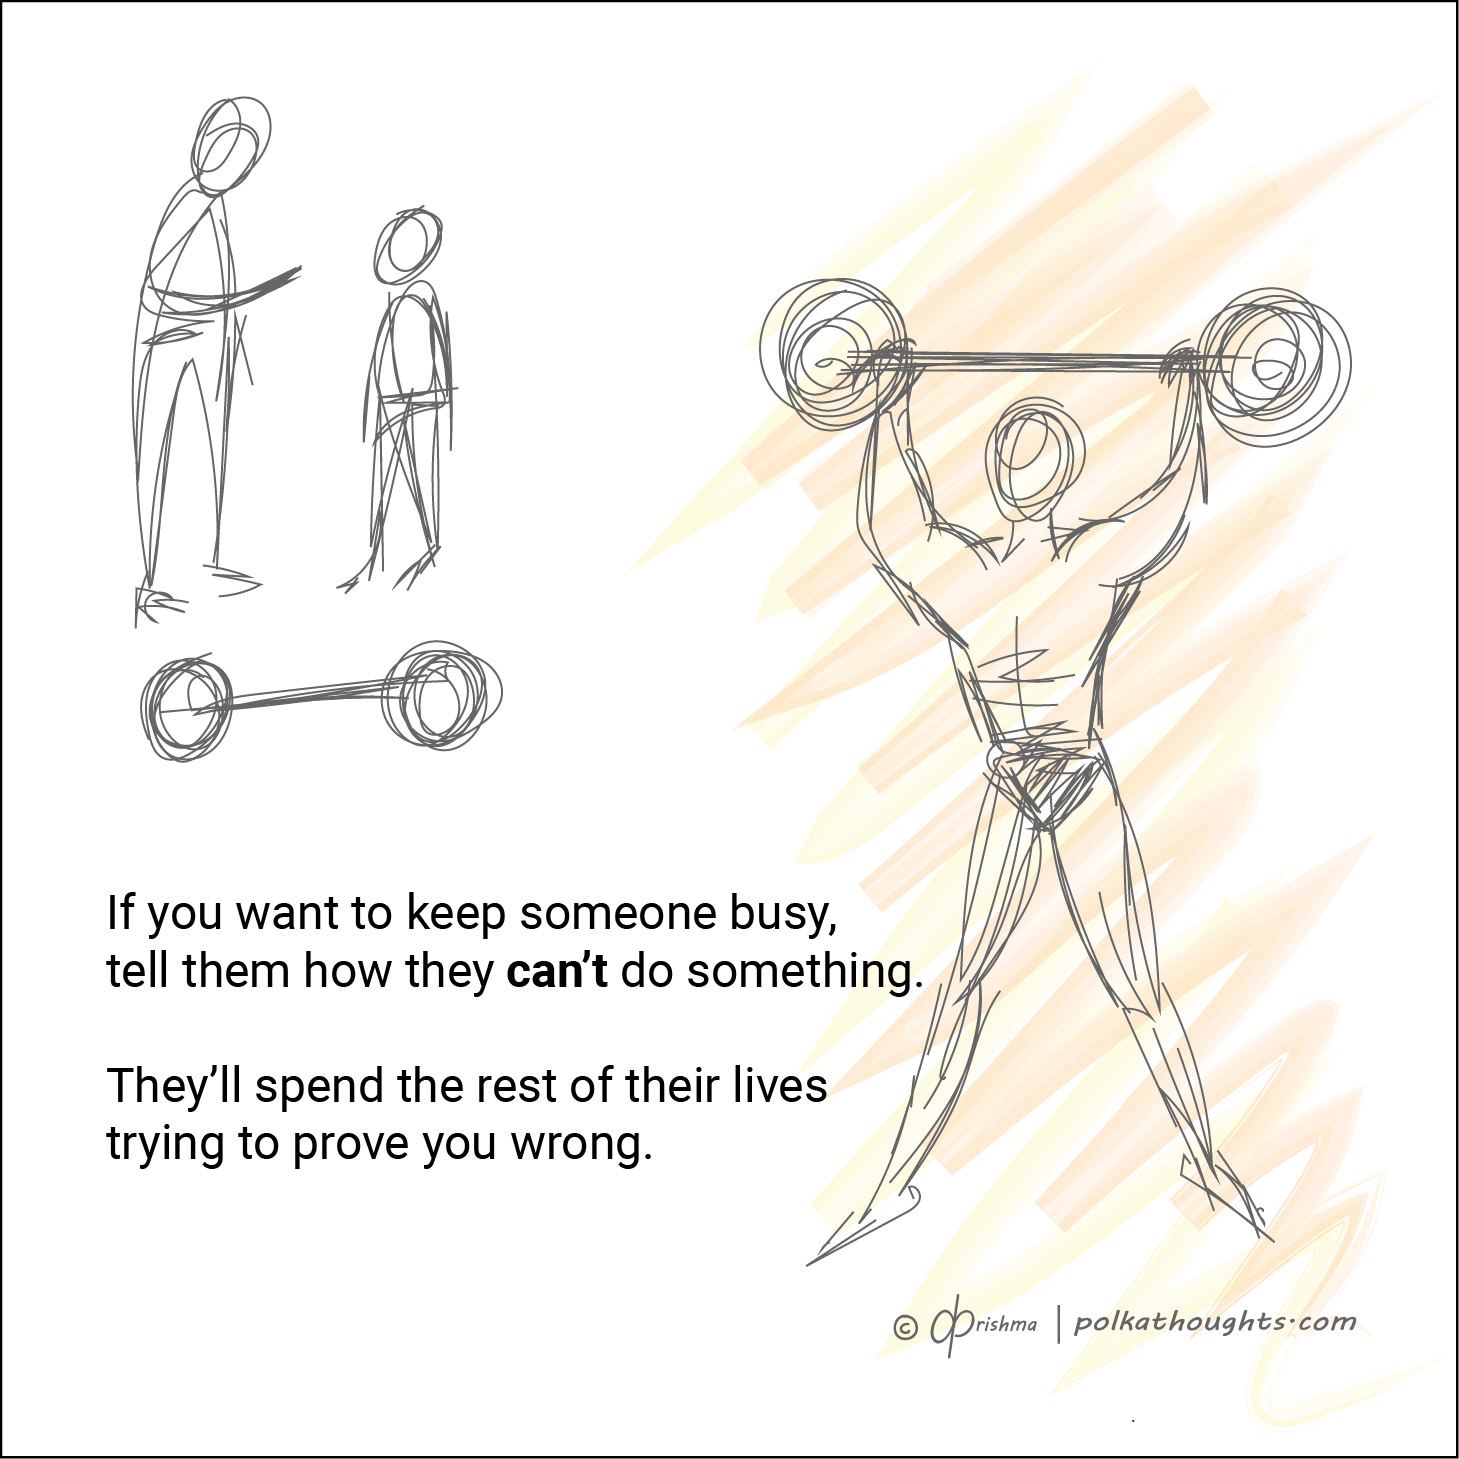 Illustration of a weight lifter